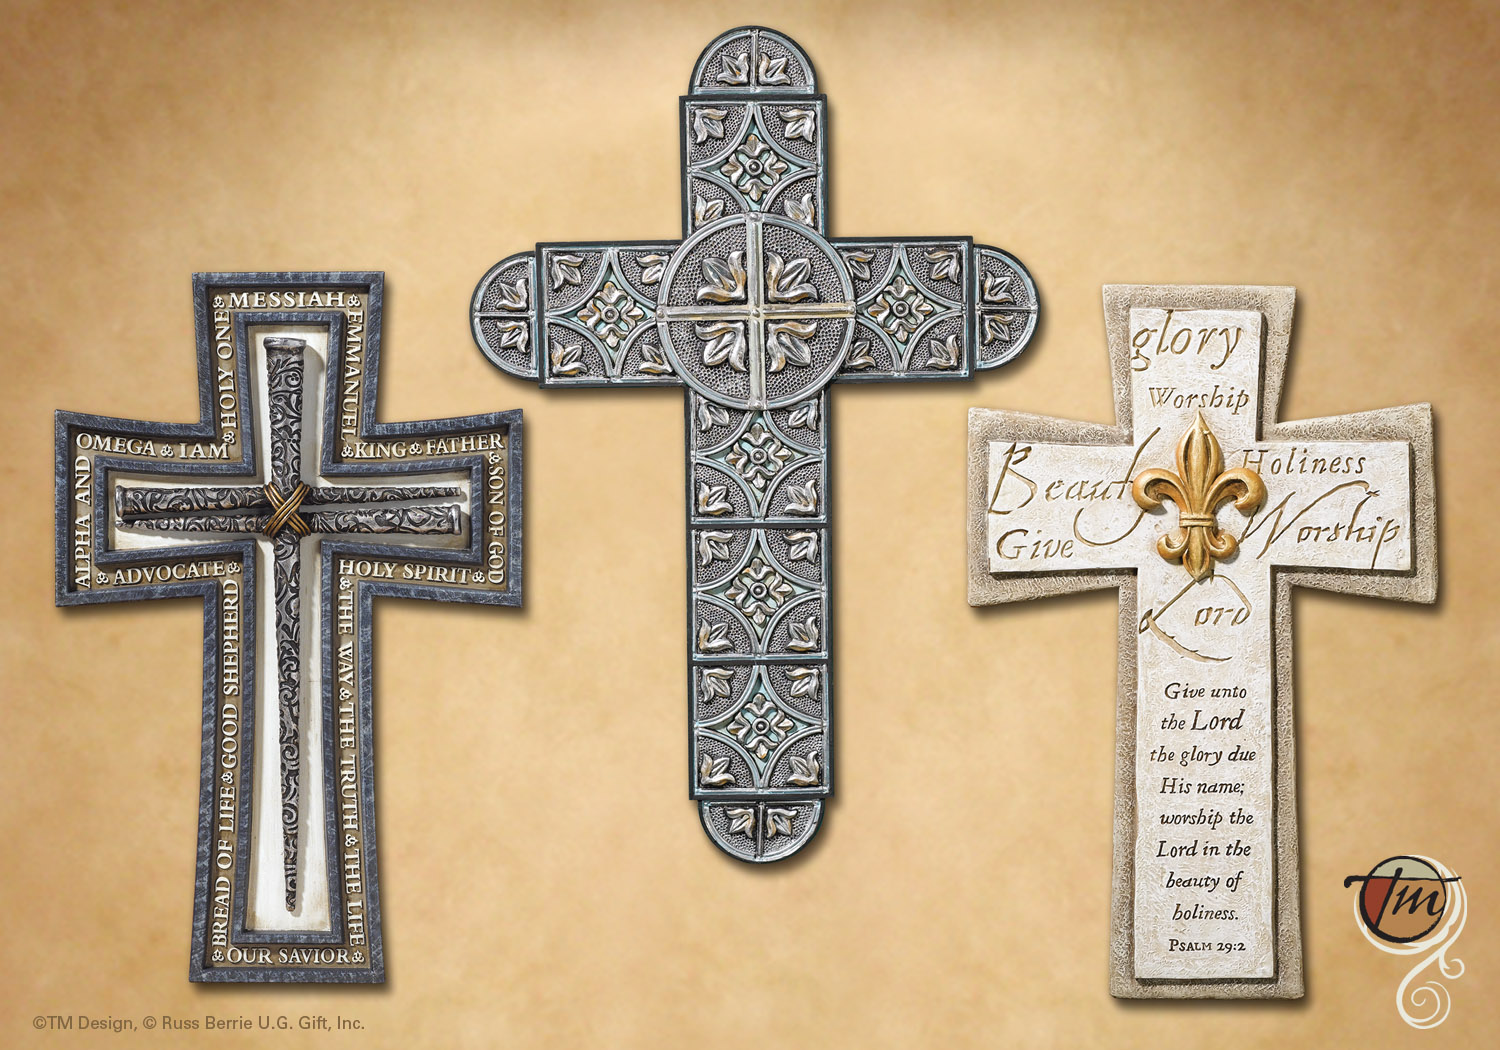 Decorative Crosses For Wall inspirational giftware designtracy mikesell at coroflot